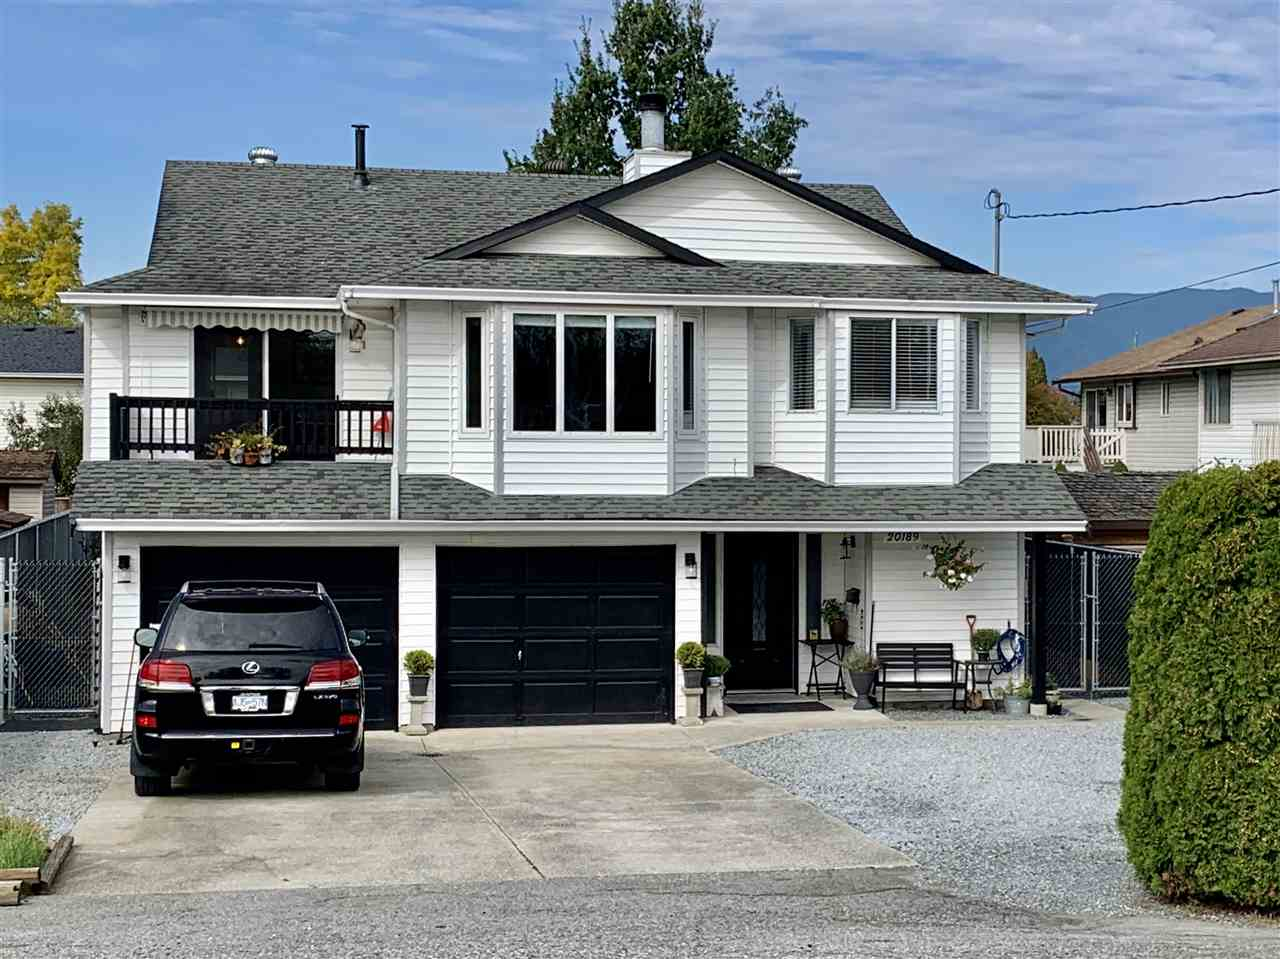 Welcome to the good life in Port Hammond Maple Ridge, a friendly historic neighborhood with good access to work and play. On offer is a fully renovated home with easy access to Golden Ears bridge, Hwy 1, Lougheed Hwy, South Fraser Perimeter & the West Coast express giving lots of options for your commute. A boat launch, trail all the way to the Pitt River Bridge, parks and off leash dog park all within blocks allows quick playtime enjoyment no matter the activities. The newly renovated master bedroom with a river view and custom closet wall for him and her is sure to please. Along with a fully renovated master bath featuring his and her separate vanities. Home eligible for the Maple Ridge Garden Suite Pilot Project, a detached second suite project. Call for details.